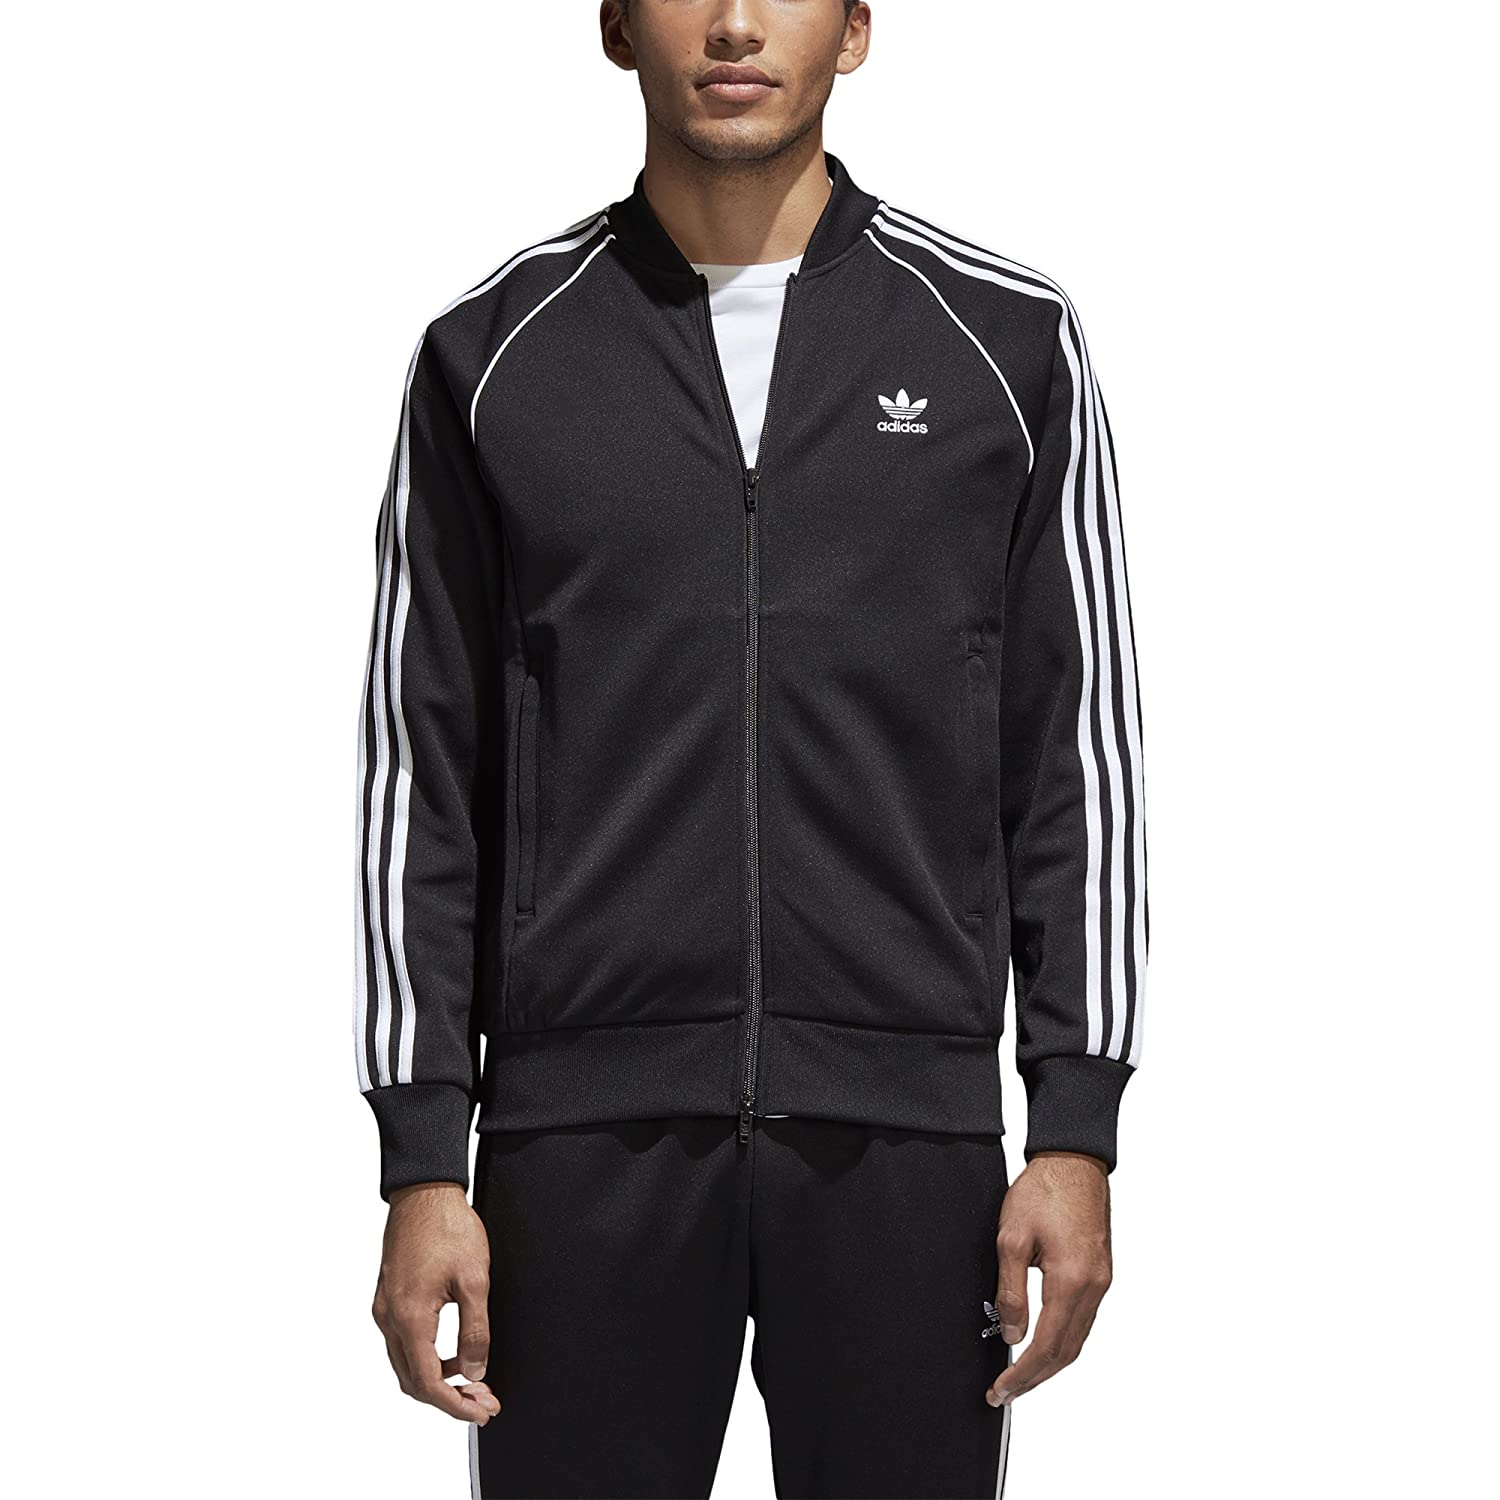 c74fe871bc8c Amazon.com  adidas Men s Superstar Track Jacket  ADIDAS  Clothing